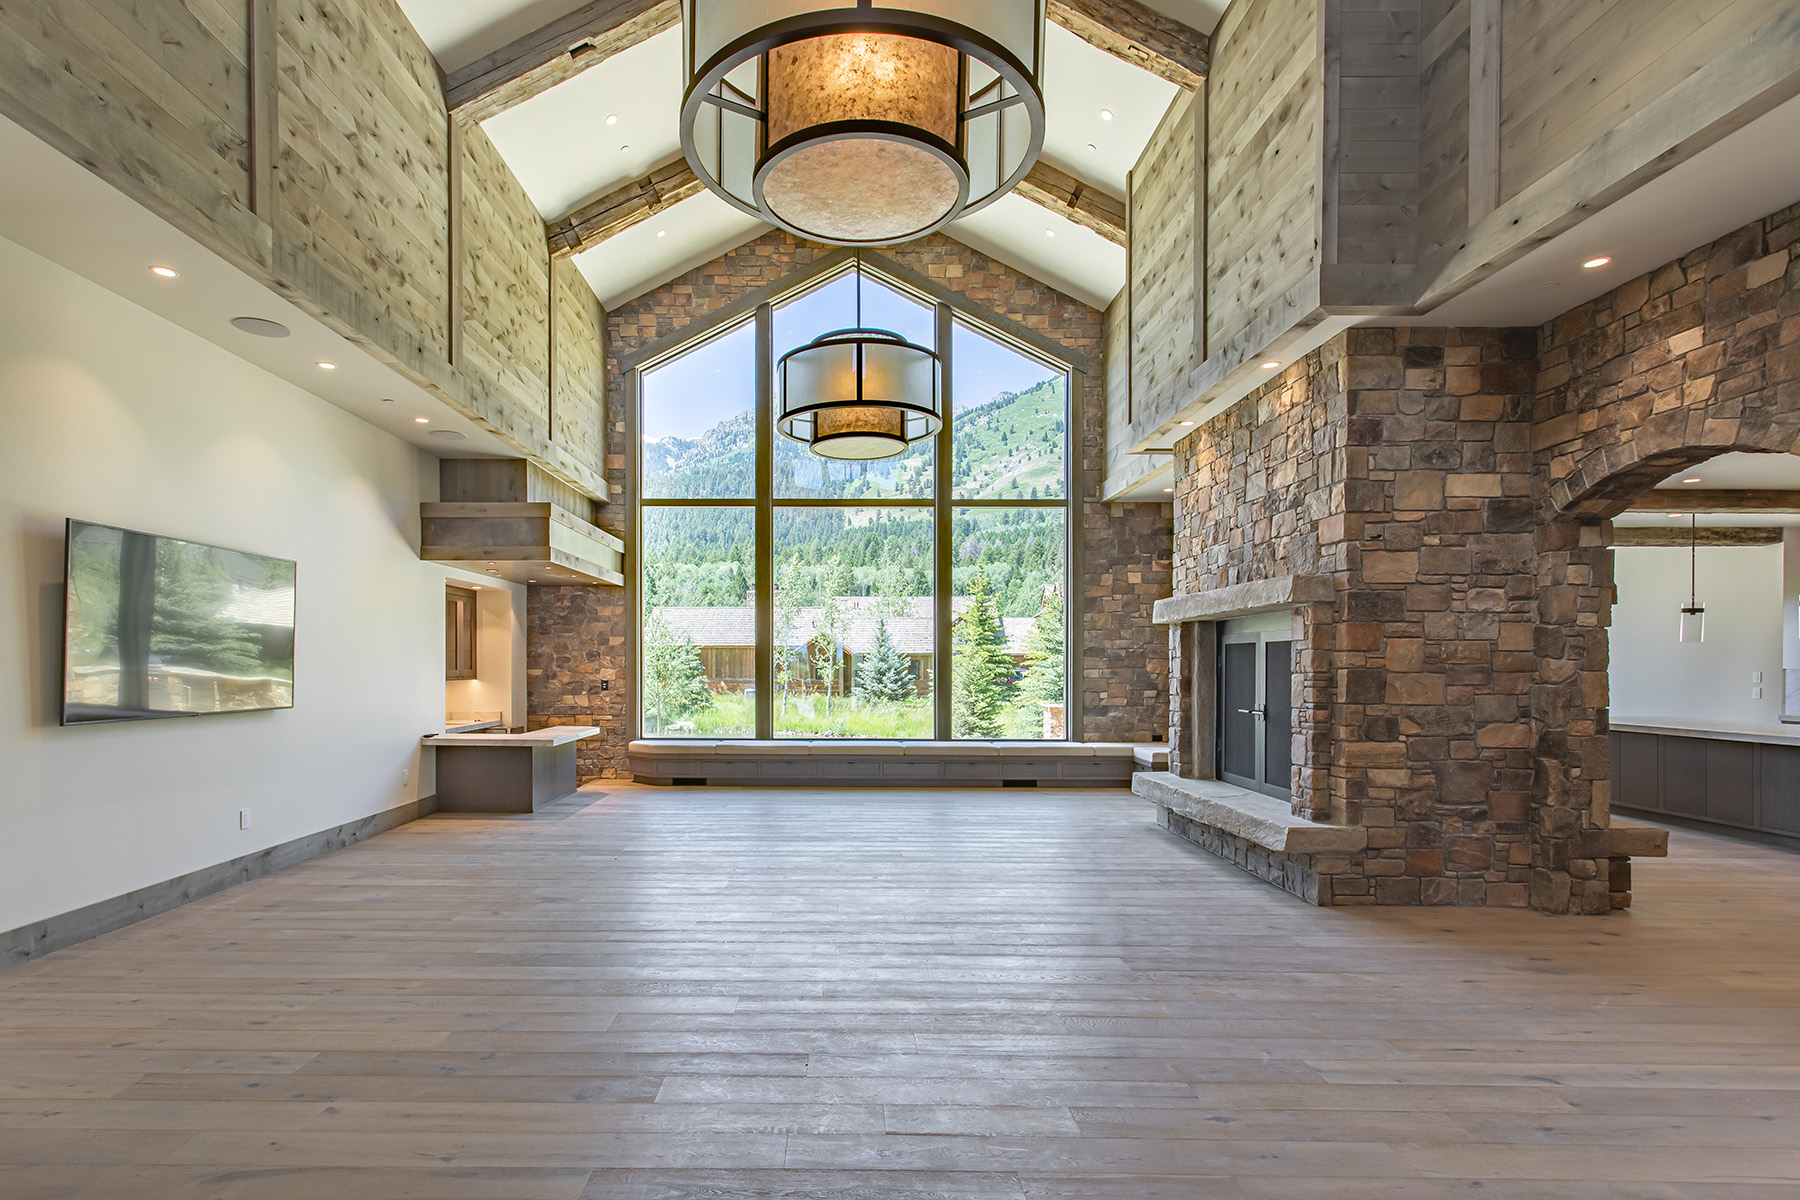 Single Family Homes للـ Sale في Elegant & Modern Shooting Star Residence 7085 Jensen Canyon Road, Teton Village, Wyoming 83025 United States